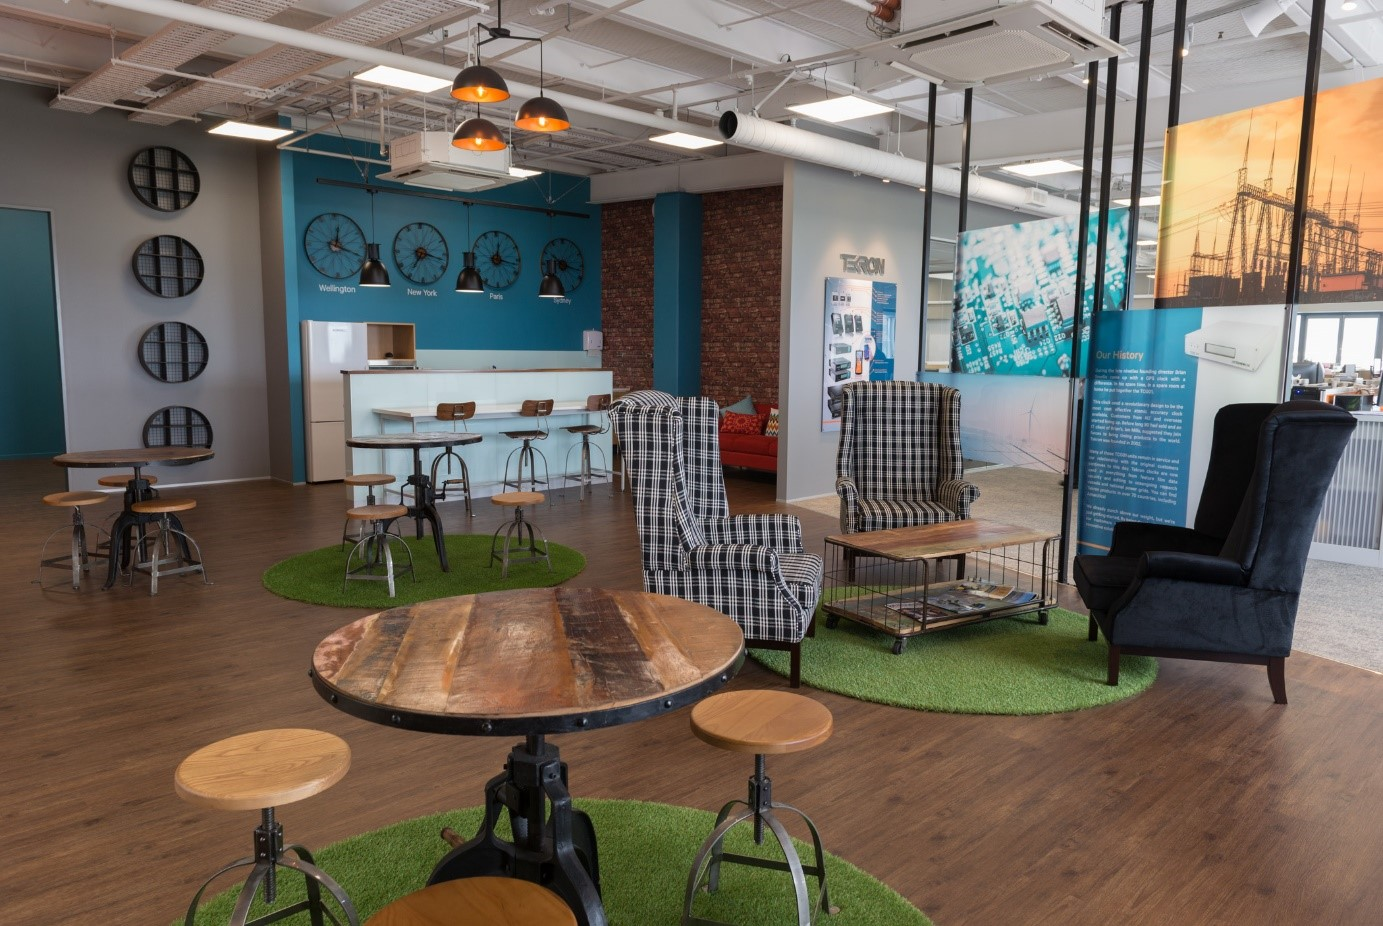 Tekron International's office showing how spaces and working areas encourage diversity